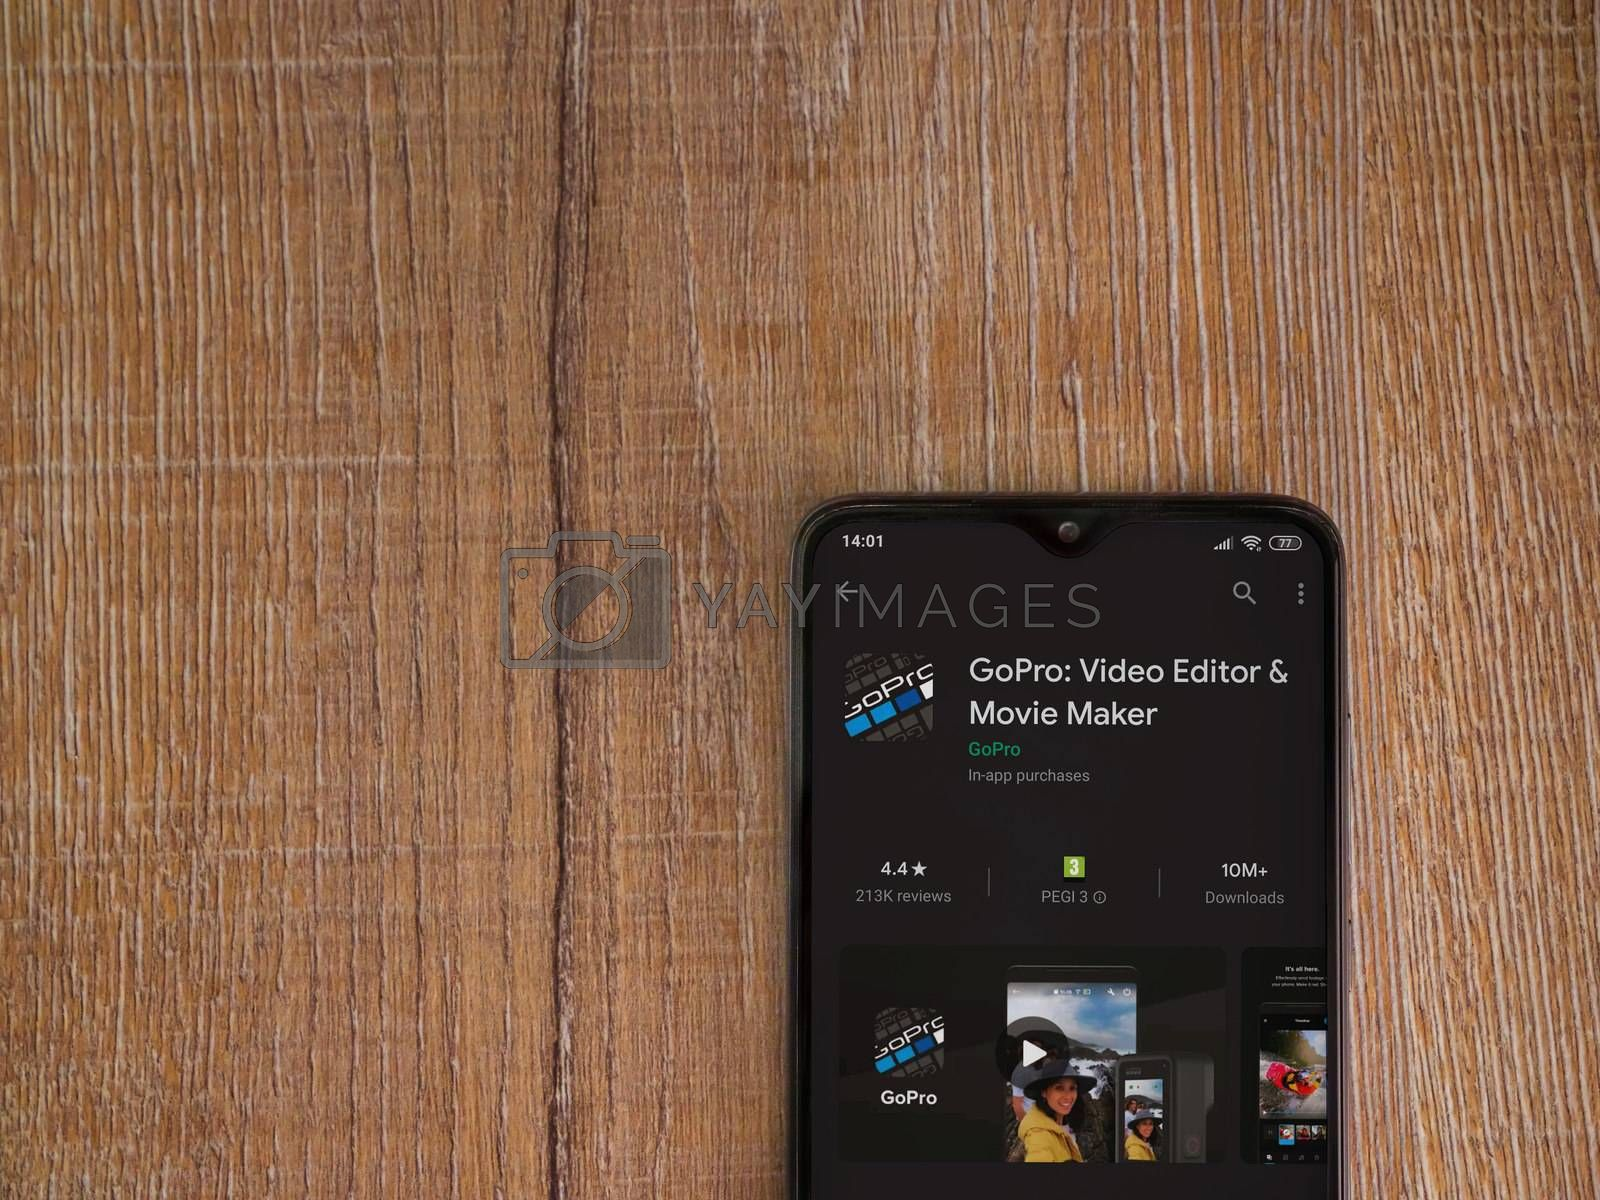 Lod, Israel - July 8, 2020: GoPro - Video Editor and Movie Maker app play store page on the display of a black mobile smartphone on wooden background. Top view flat lay with copy space.